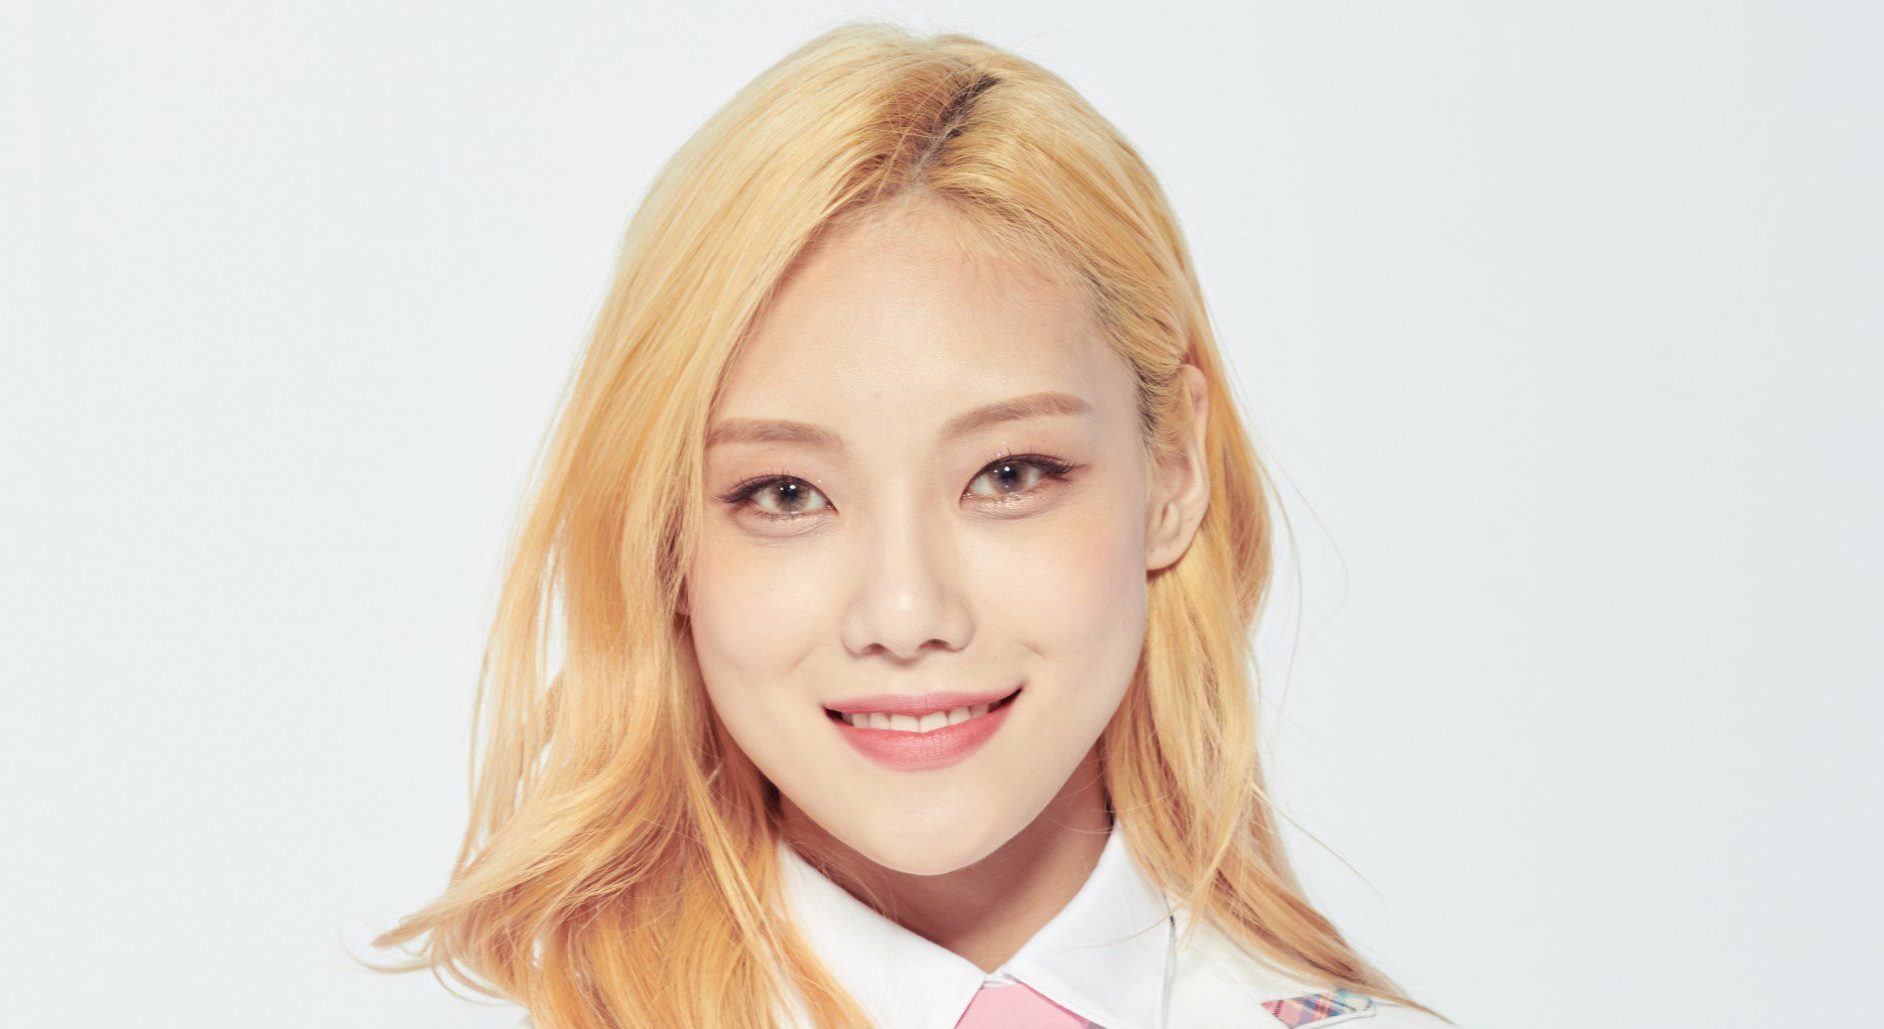 Park Seoyoung Produce 48